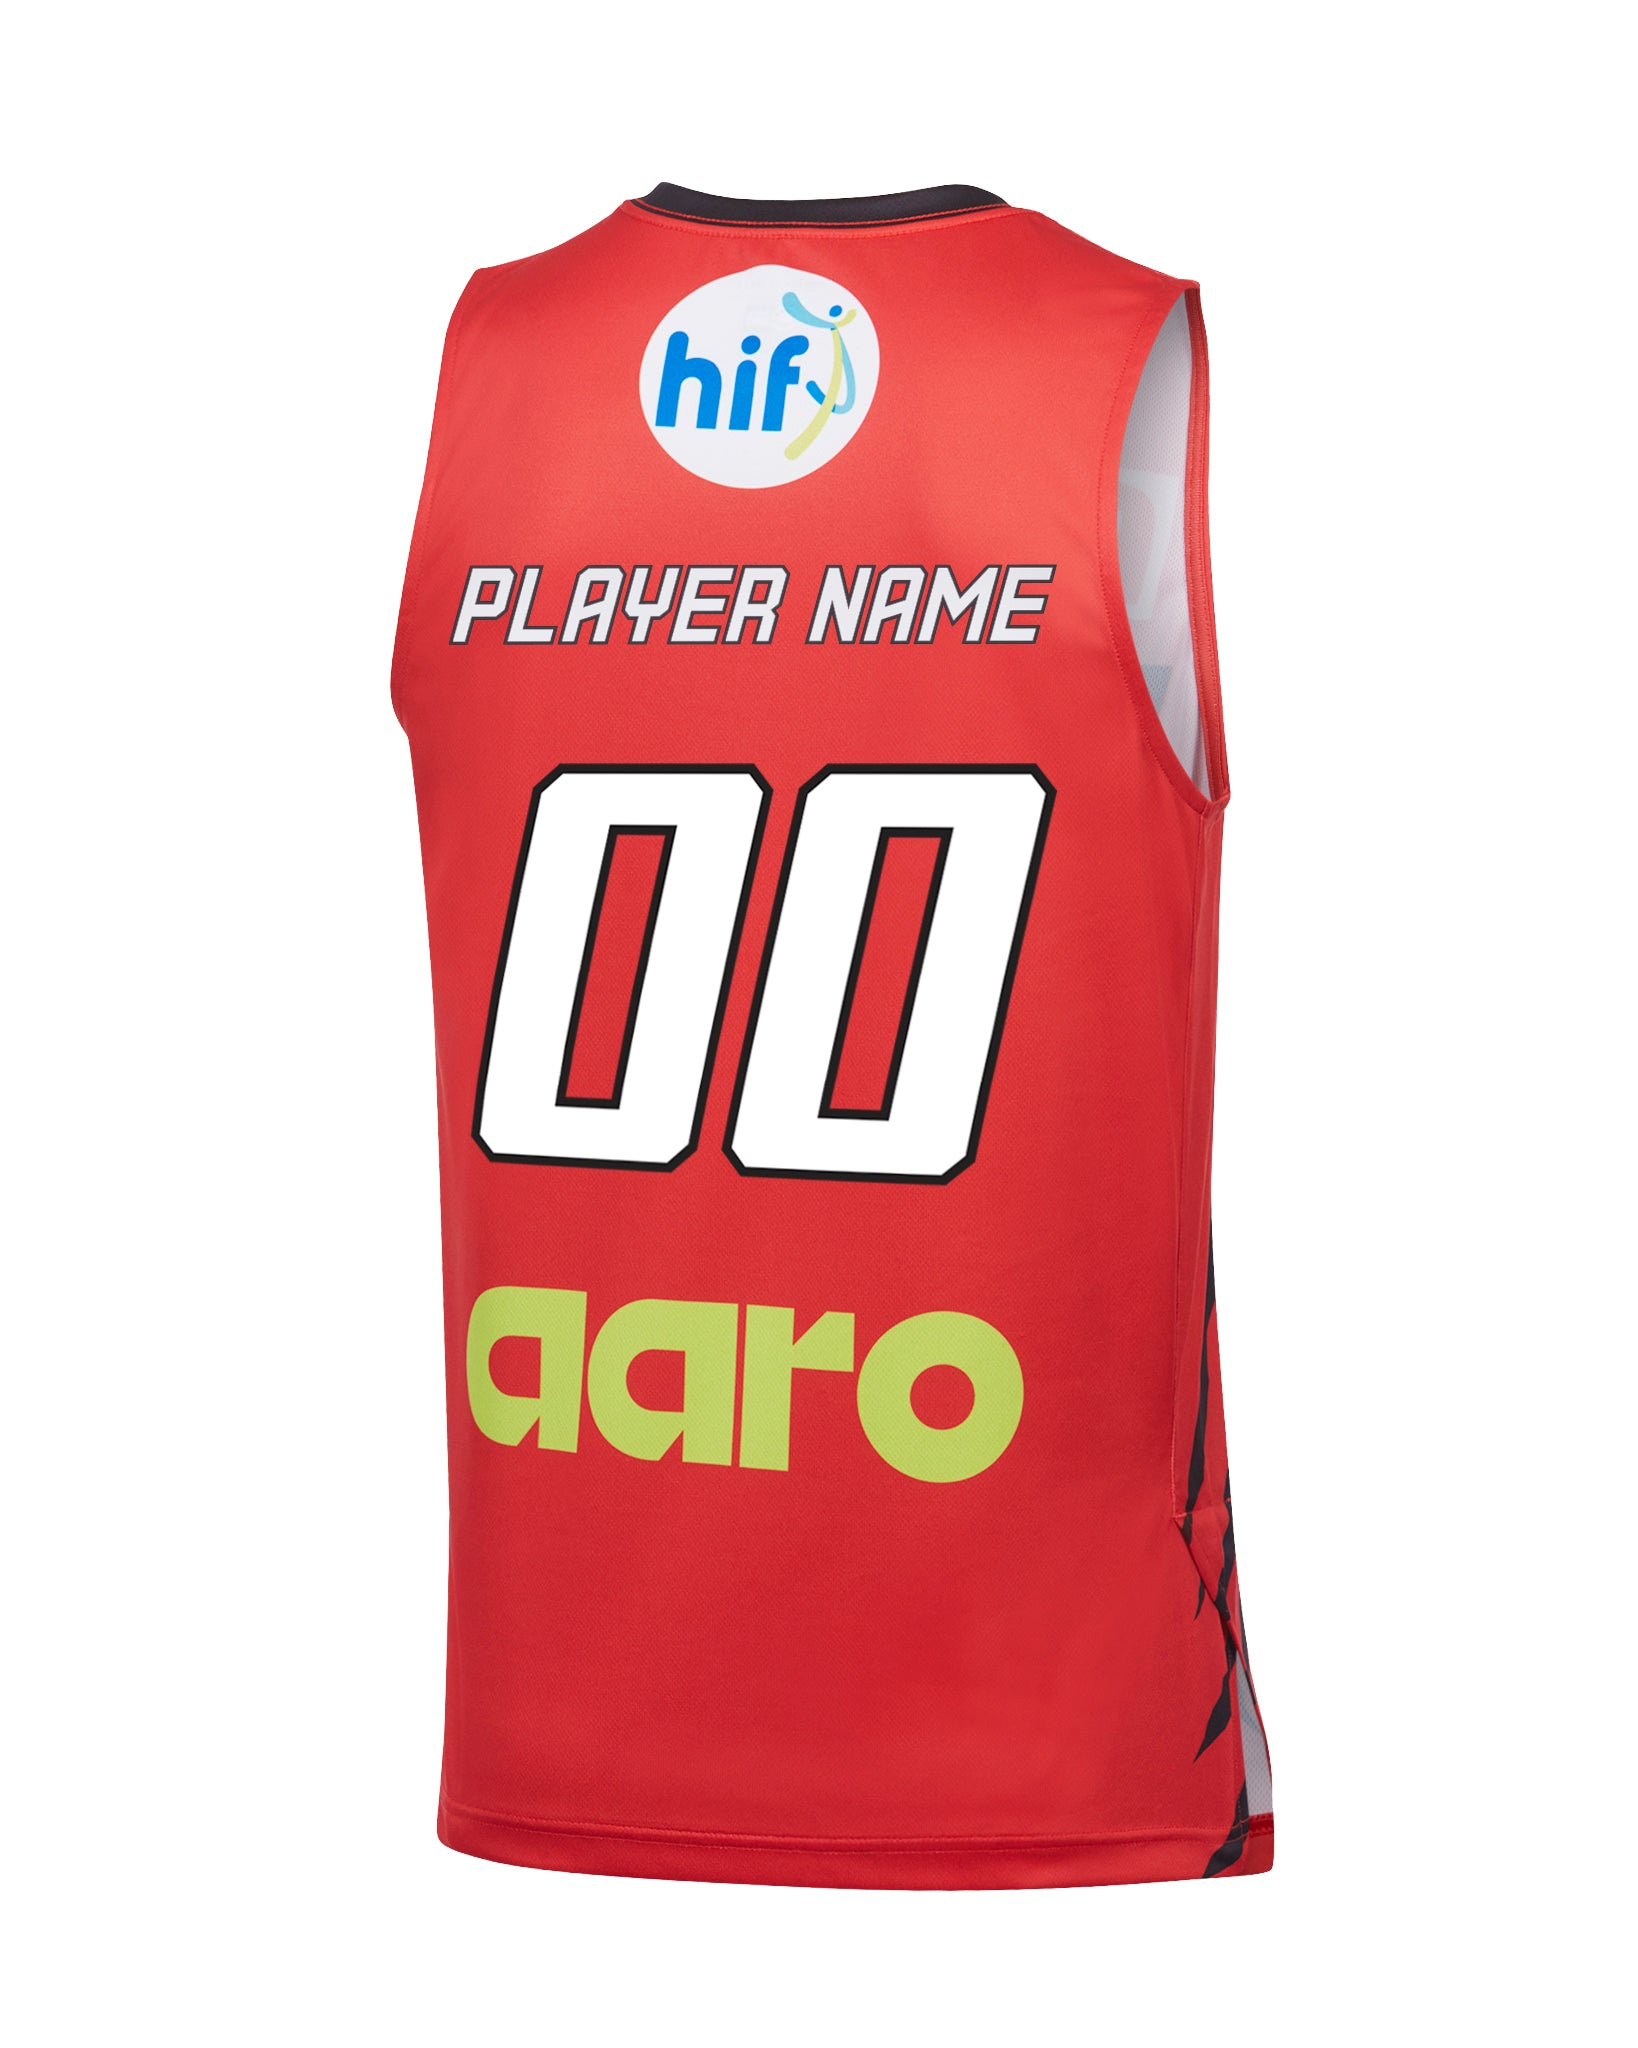 Perth Wildcats 19/20 Authentic Home Jersey - Other Players